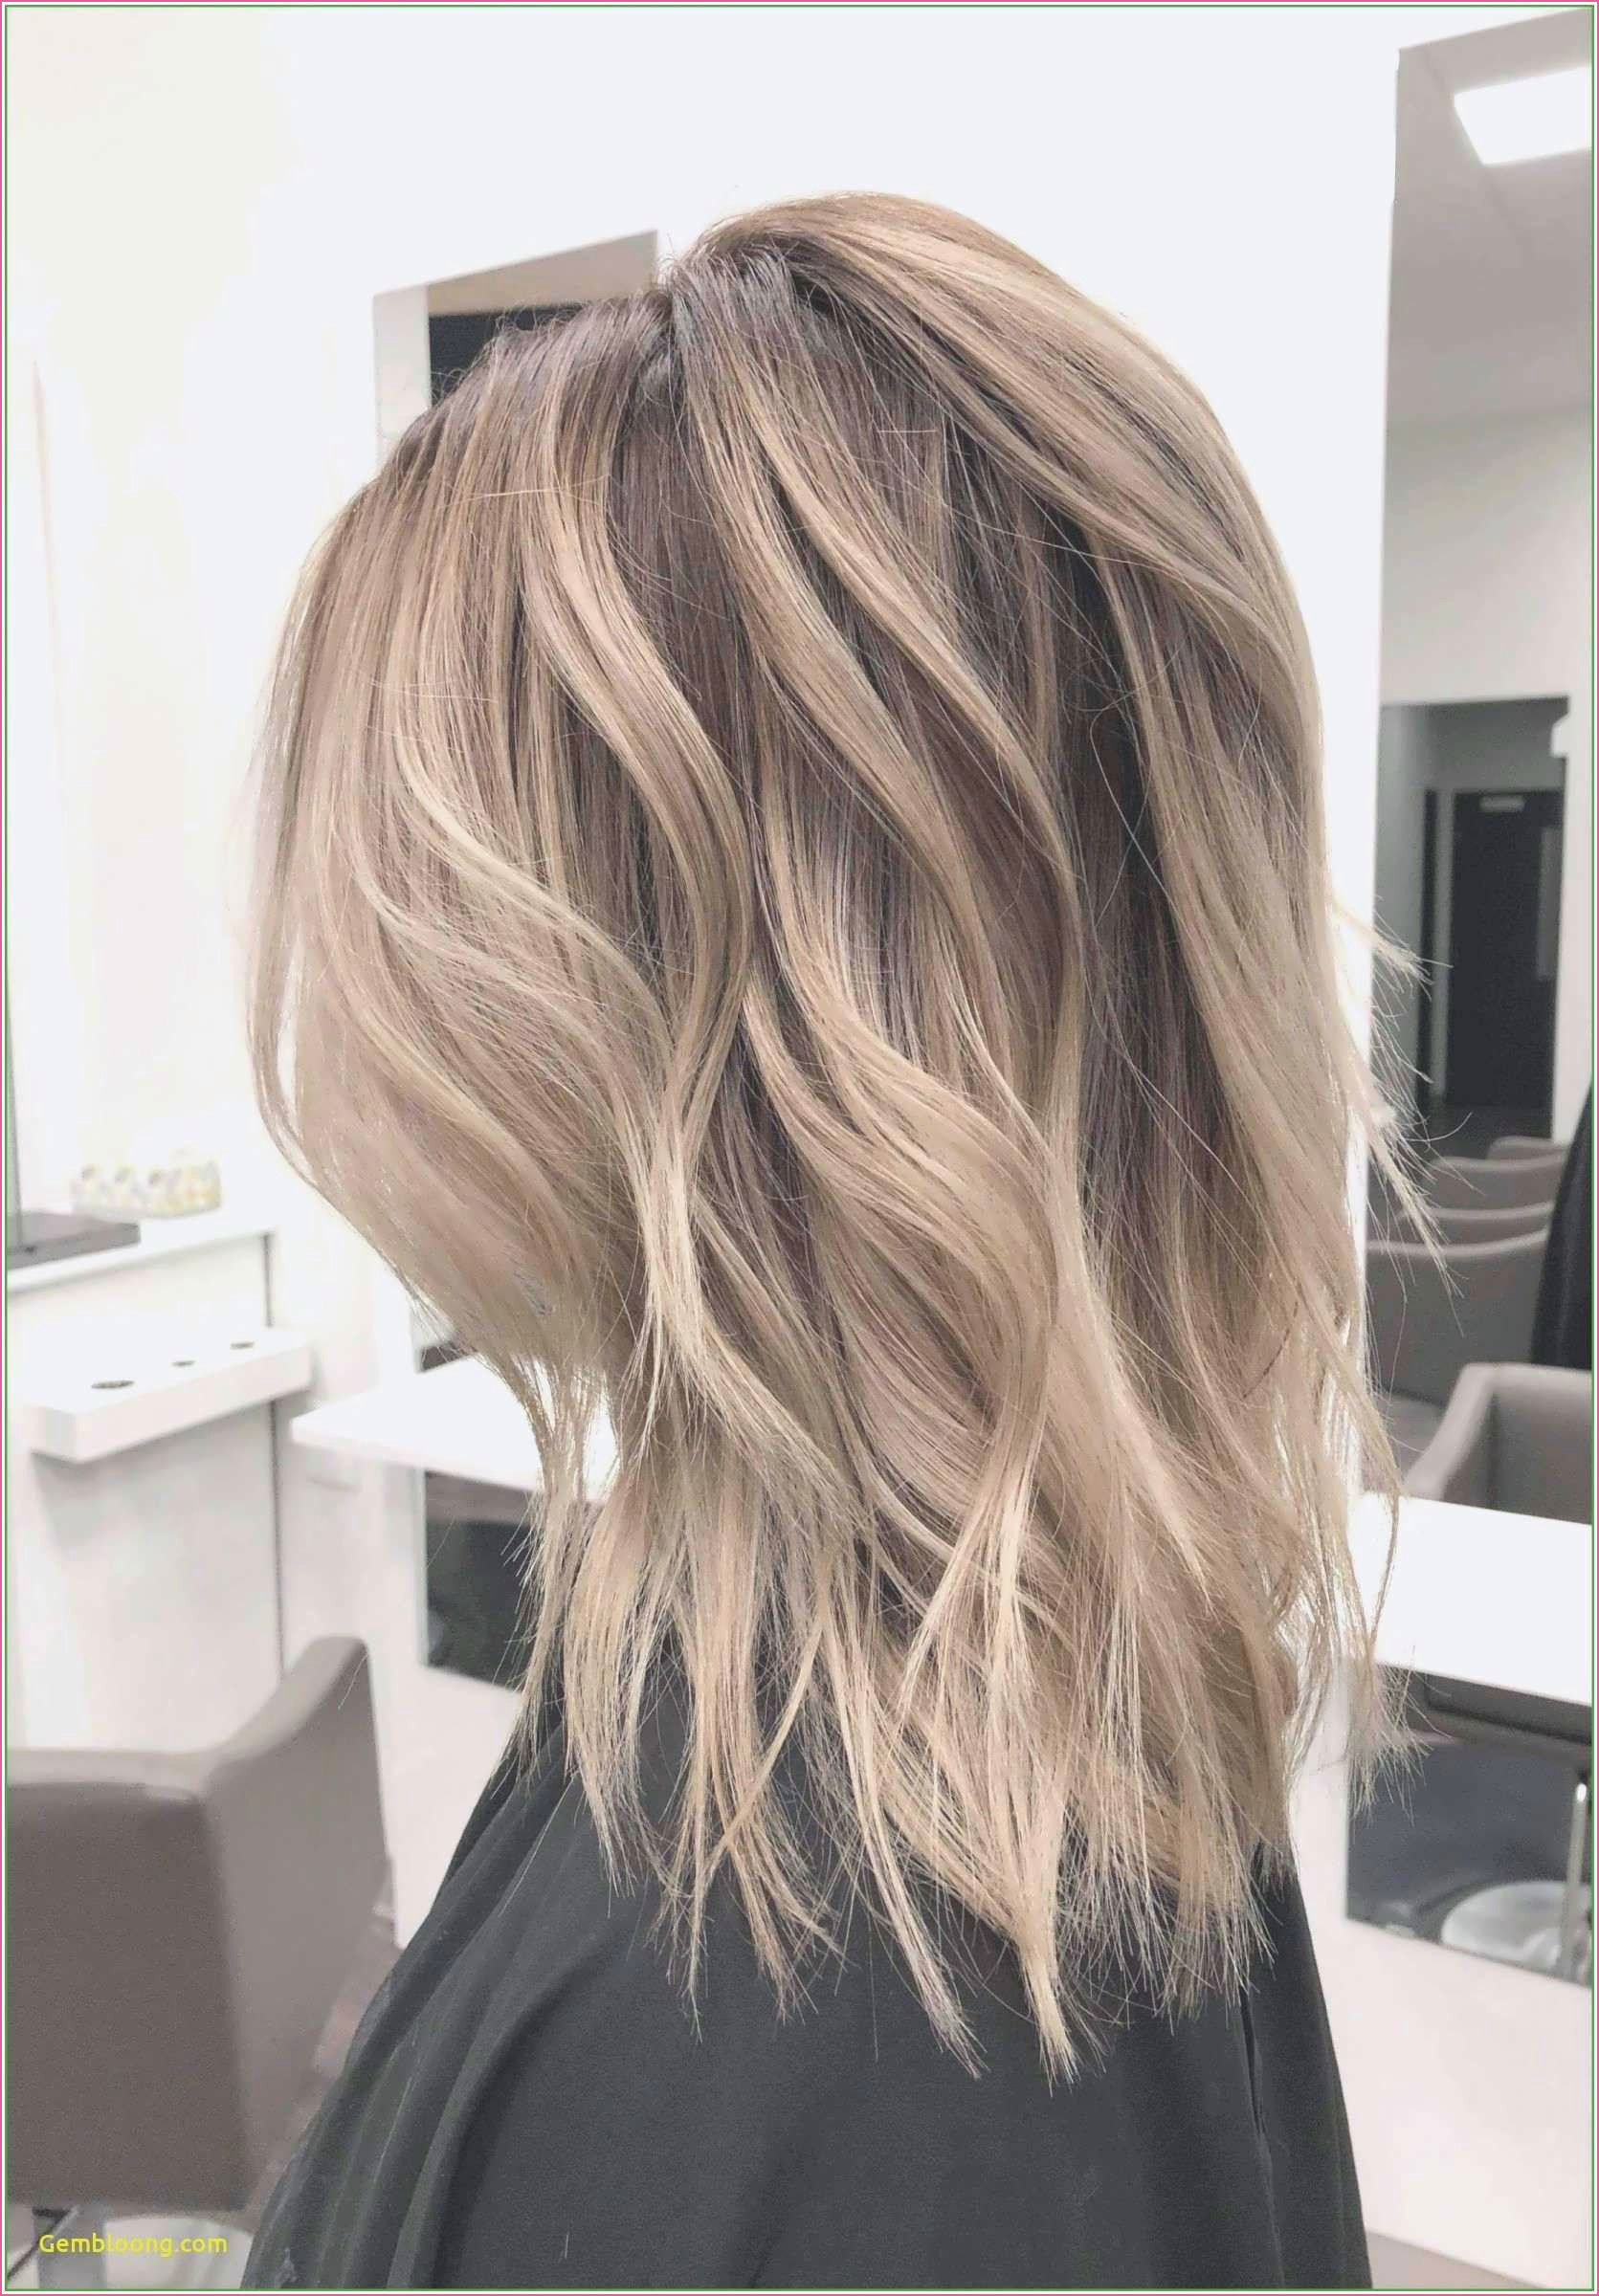 Low Maintenance Haircuts For Straight Hair In 2020 Medium Hair Styles Medium Length Hair Styles Layered Haircuts